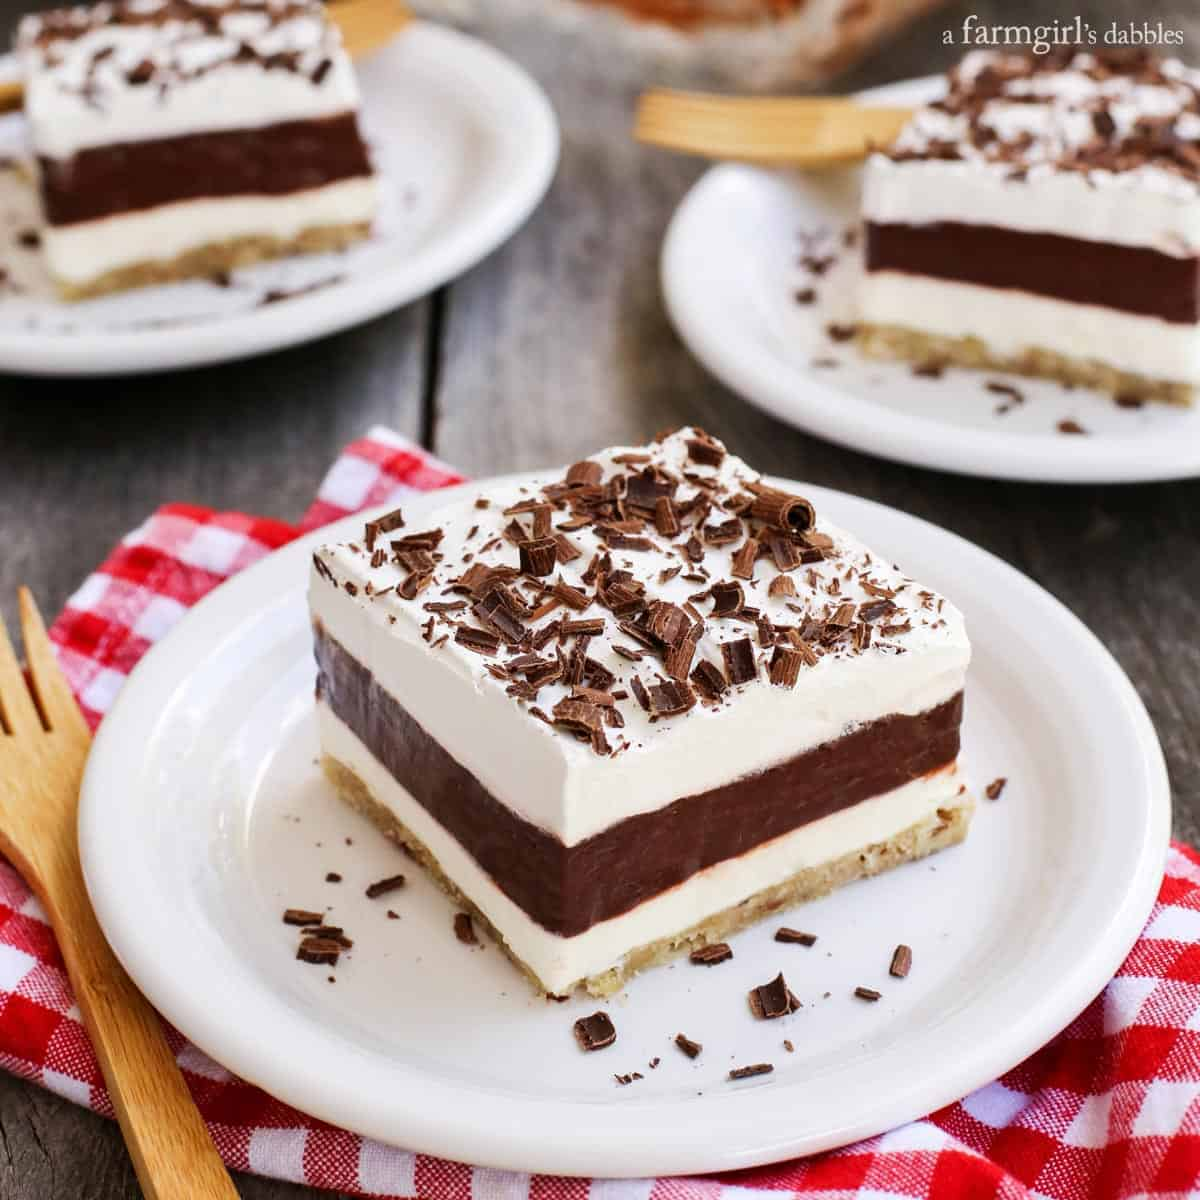 Layered Chocolate Pudding Dessert with Salted Pecan Crust